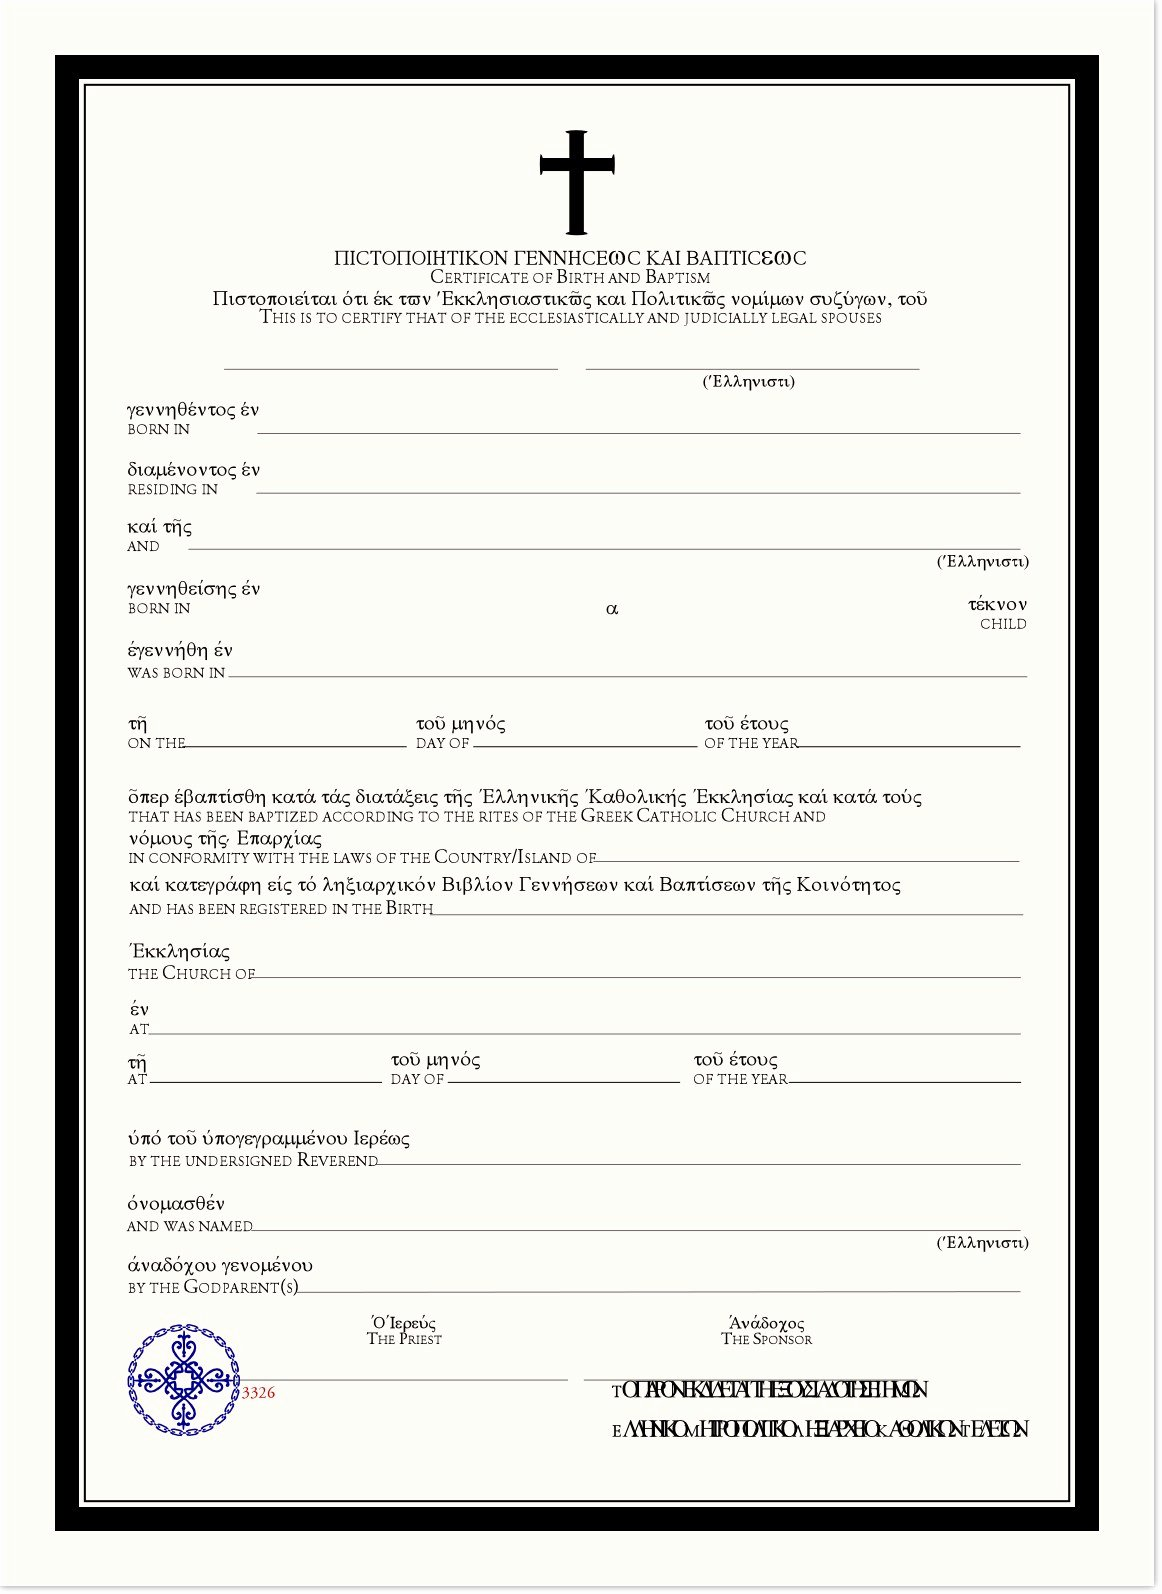 Catholic Baptismal Certificate Template Best Of Greek Catholic Baptism Certificate